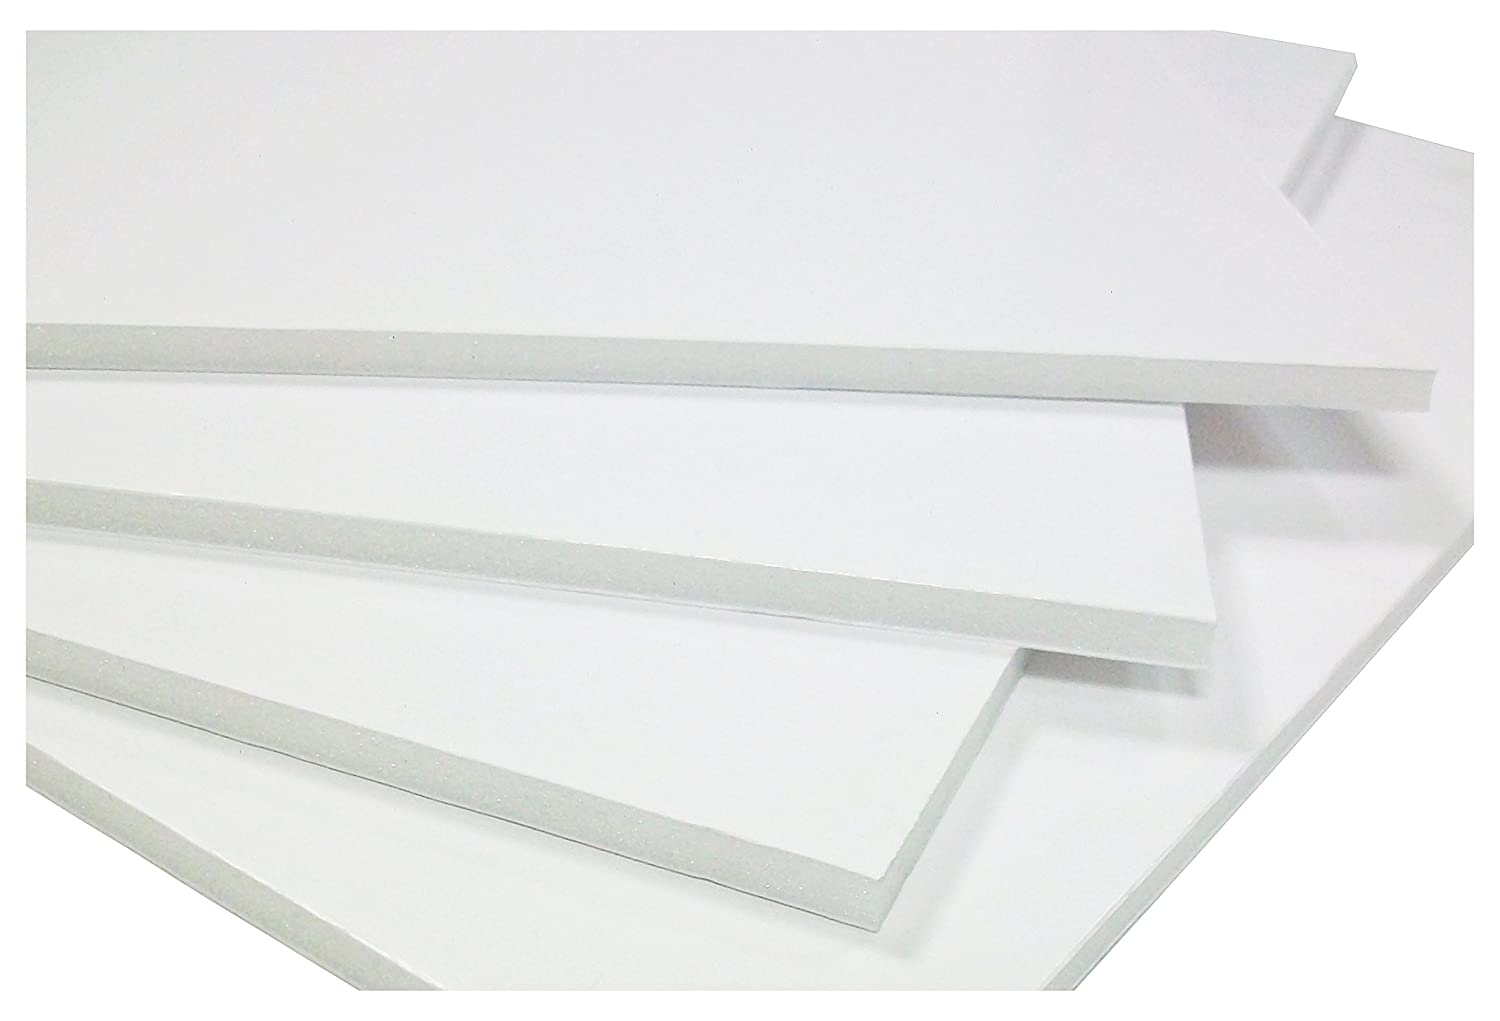 Westfoam 3 Mm A4 Foamboard - White (Pack of 30 Sheets) OfficeMarket WF3004